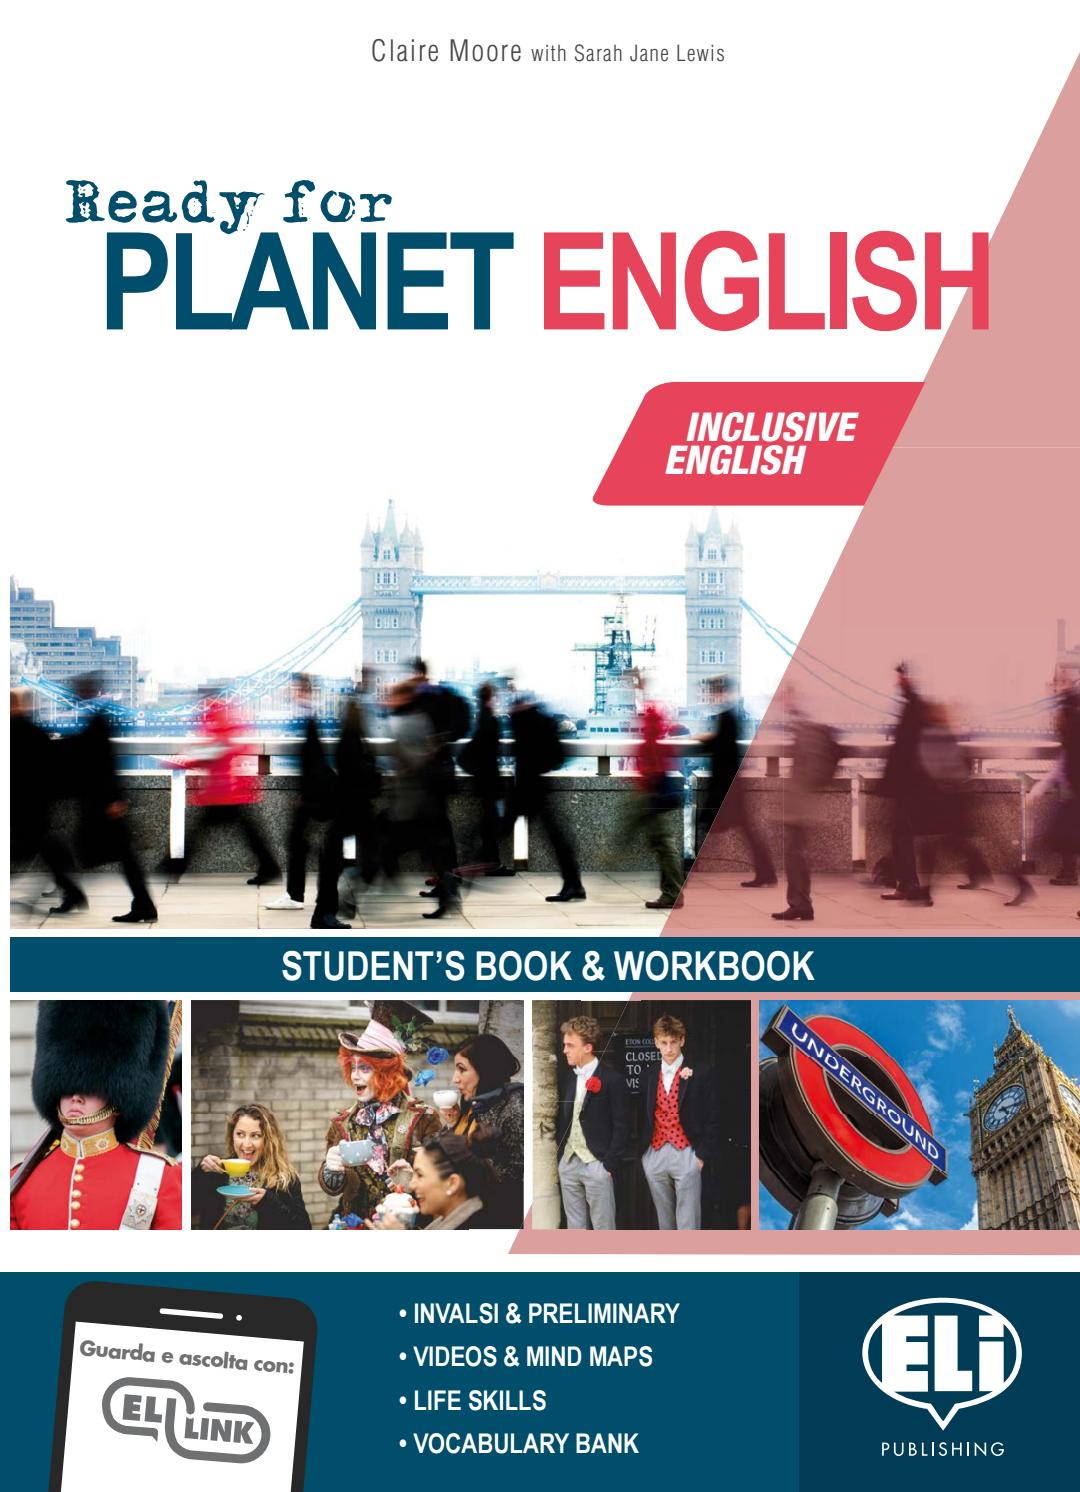 Lavoro A Manchester 2017 ready for planet english by eli publishing - issuu